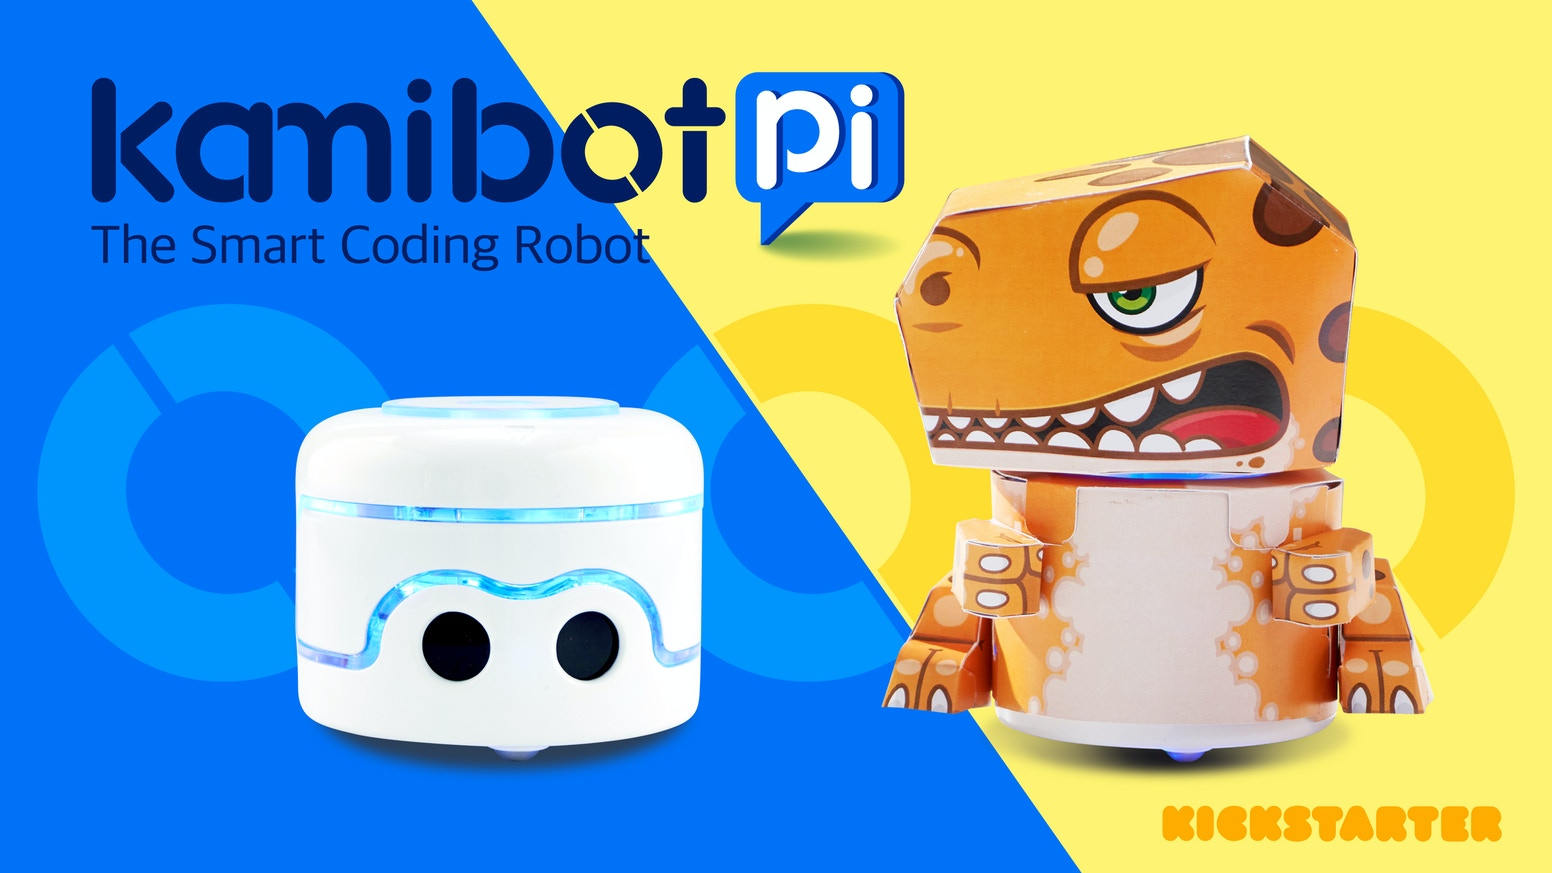 Competitive and creative learning by coding your Kamibot Pi to escape a maze, race, play soccer, draw, multi-bot sync movement & more!